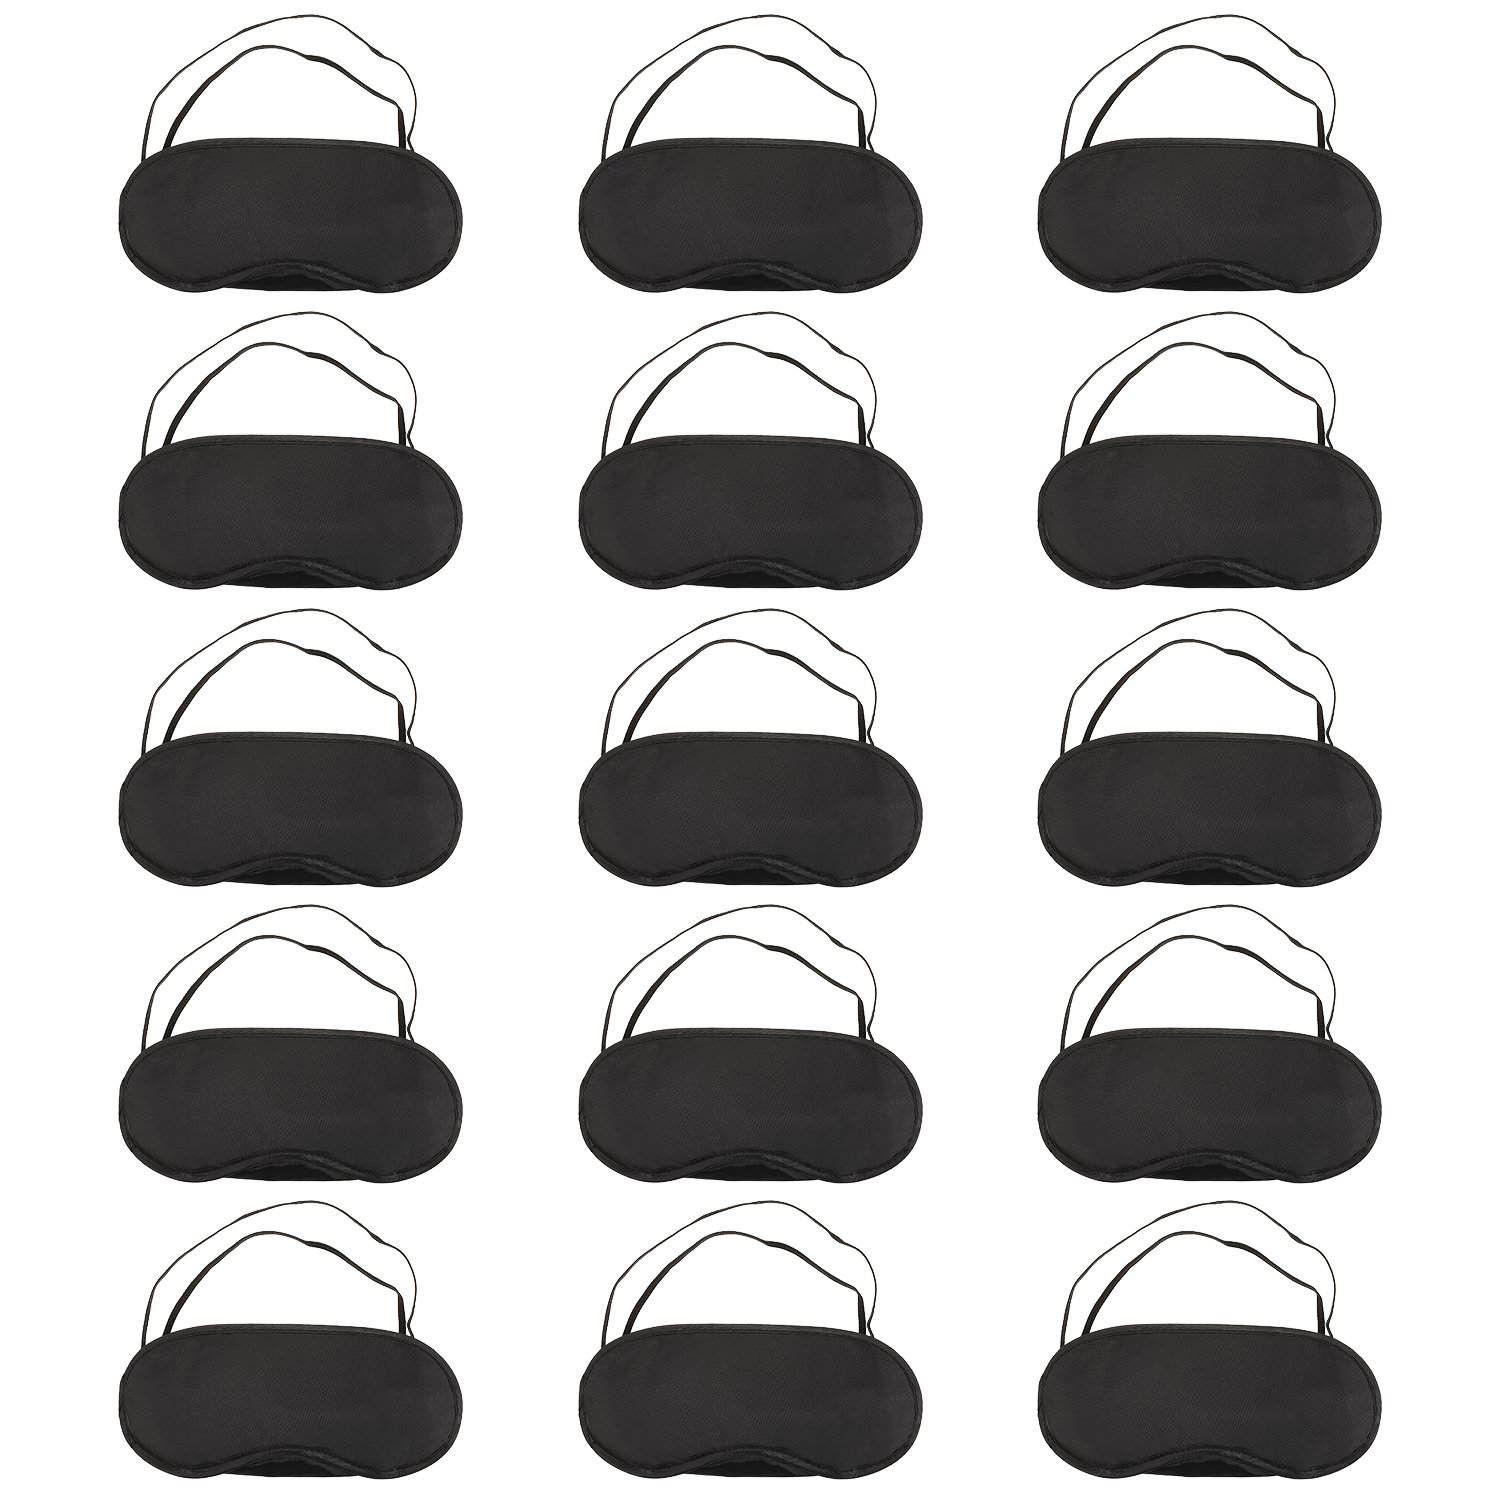 15 Pack Eye Mask Sleeping Blindfold Soft Eye Shade Cover with Nose Pad and Adjustable Strap for Travel Sleep, Black Hicarer